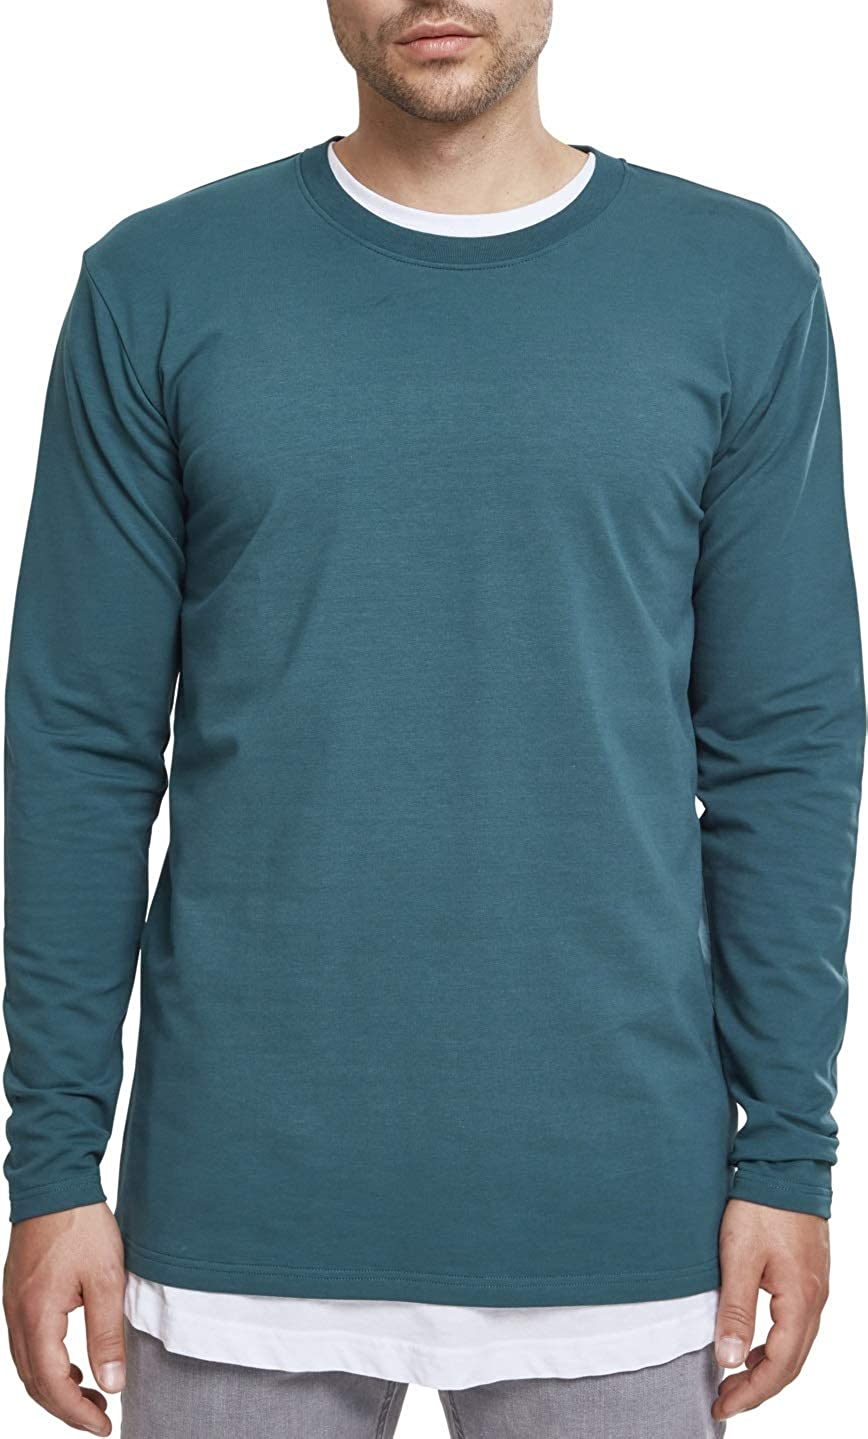 Urban Classics Stretch Terry Longsleeve T-Shirt Manches Longues Homme